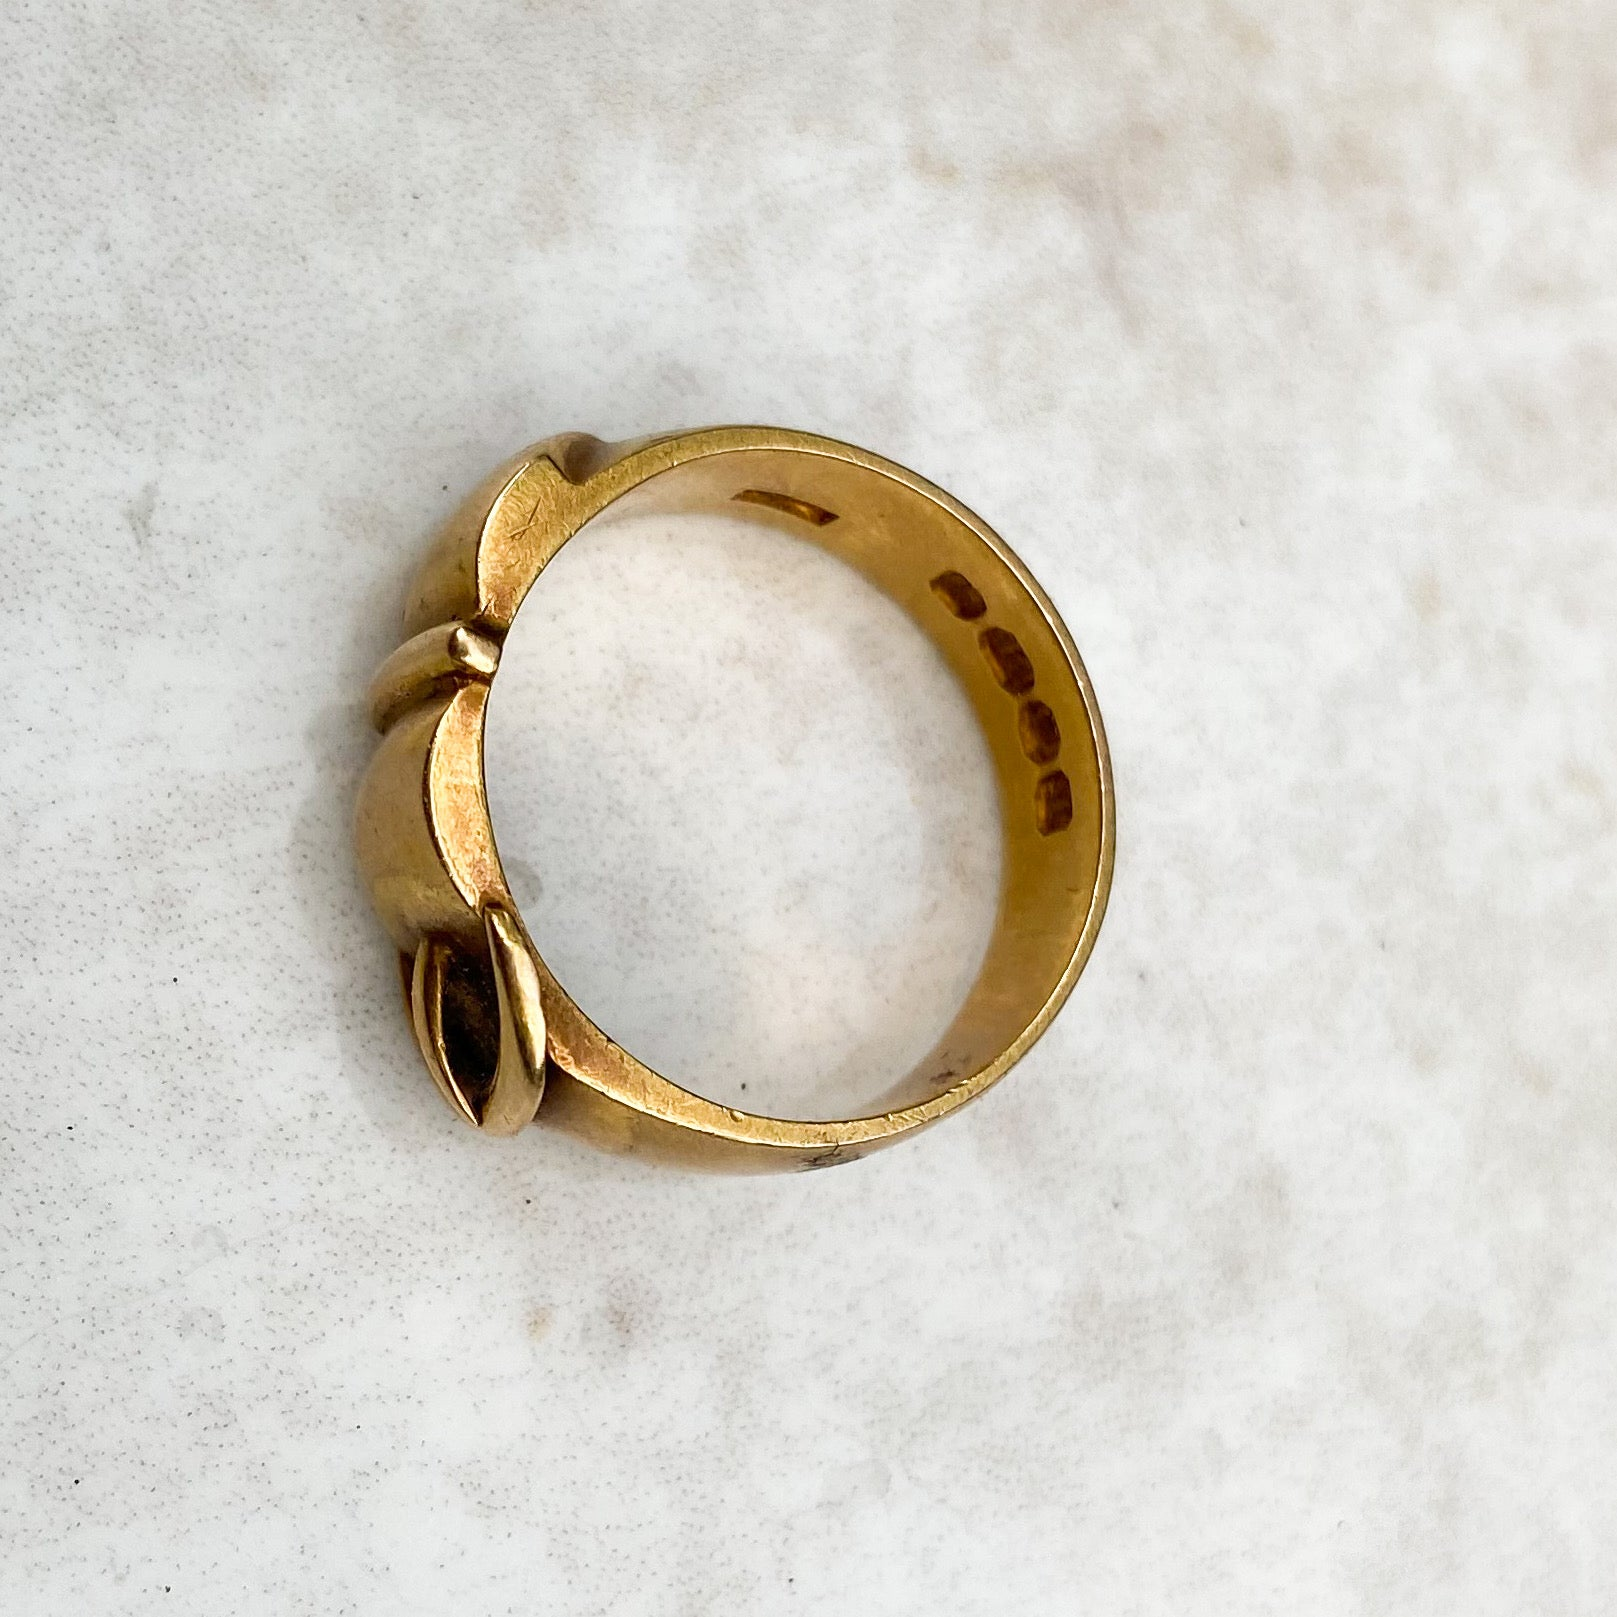 Belt and Buckle Ring; 18ct Gold; Victorian era, 1875